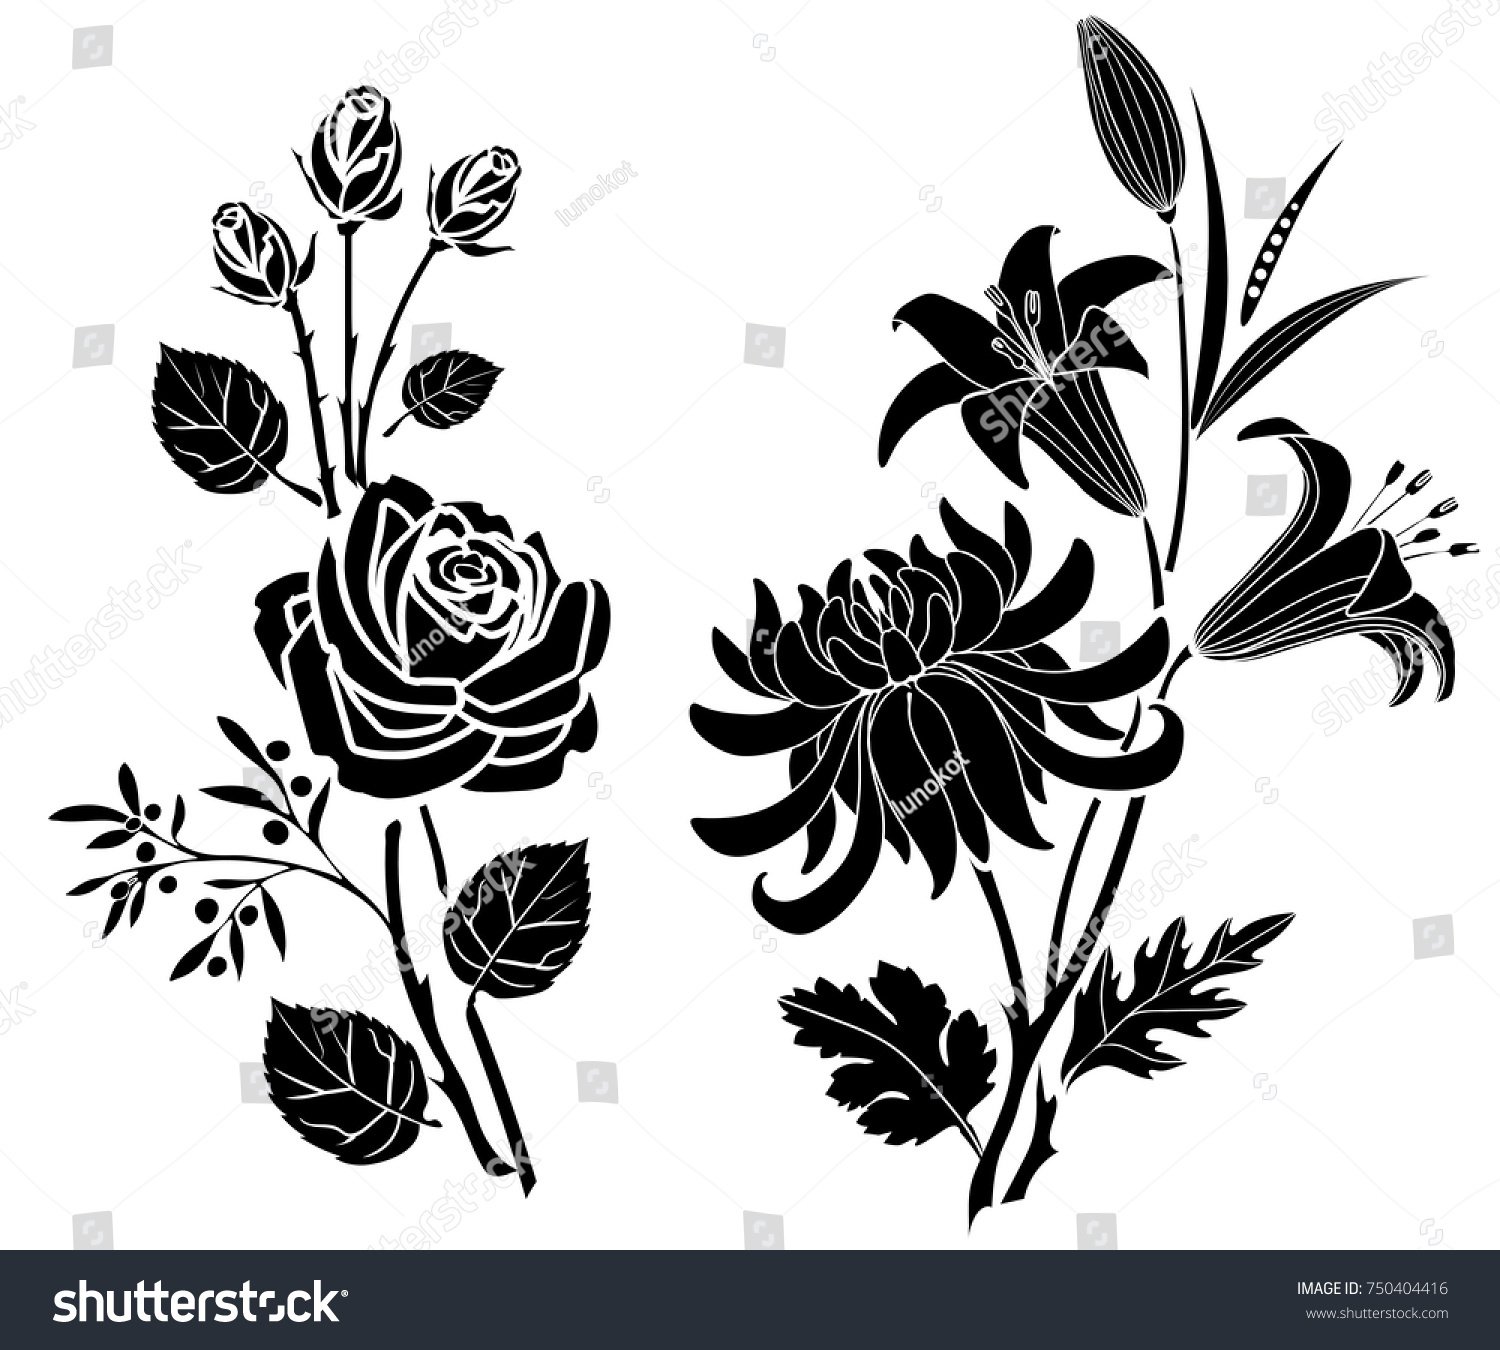 Rose Lily Chrysanthemum Tattoo Silhouette Flowers Stock Vector